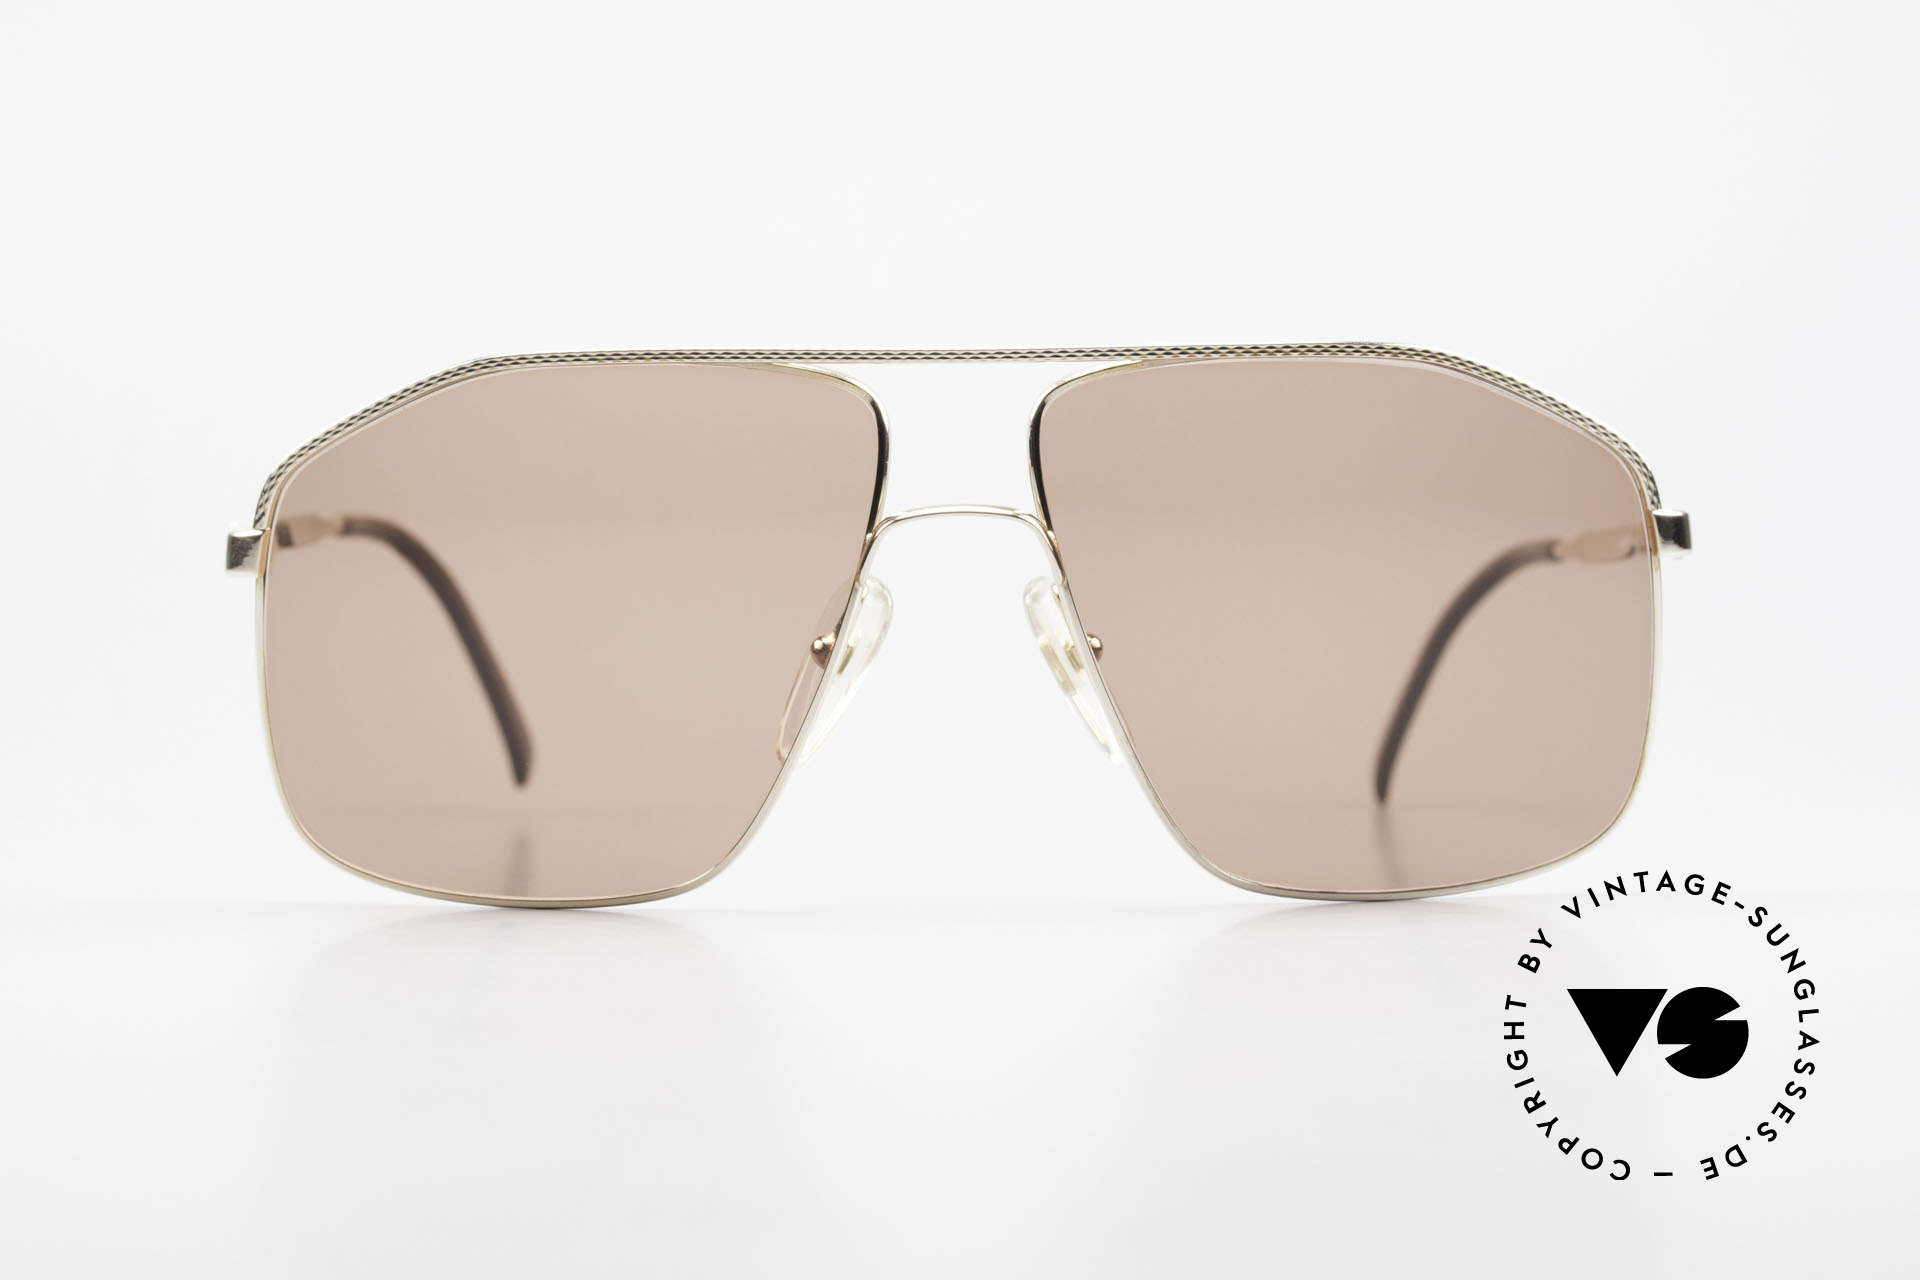 Dunhill 6104 Gold Plated Shades 90's Men, distinguished sunglasses by Dunhill from 1991, Made for Men